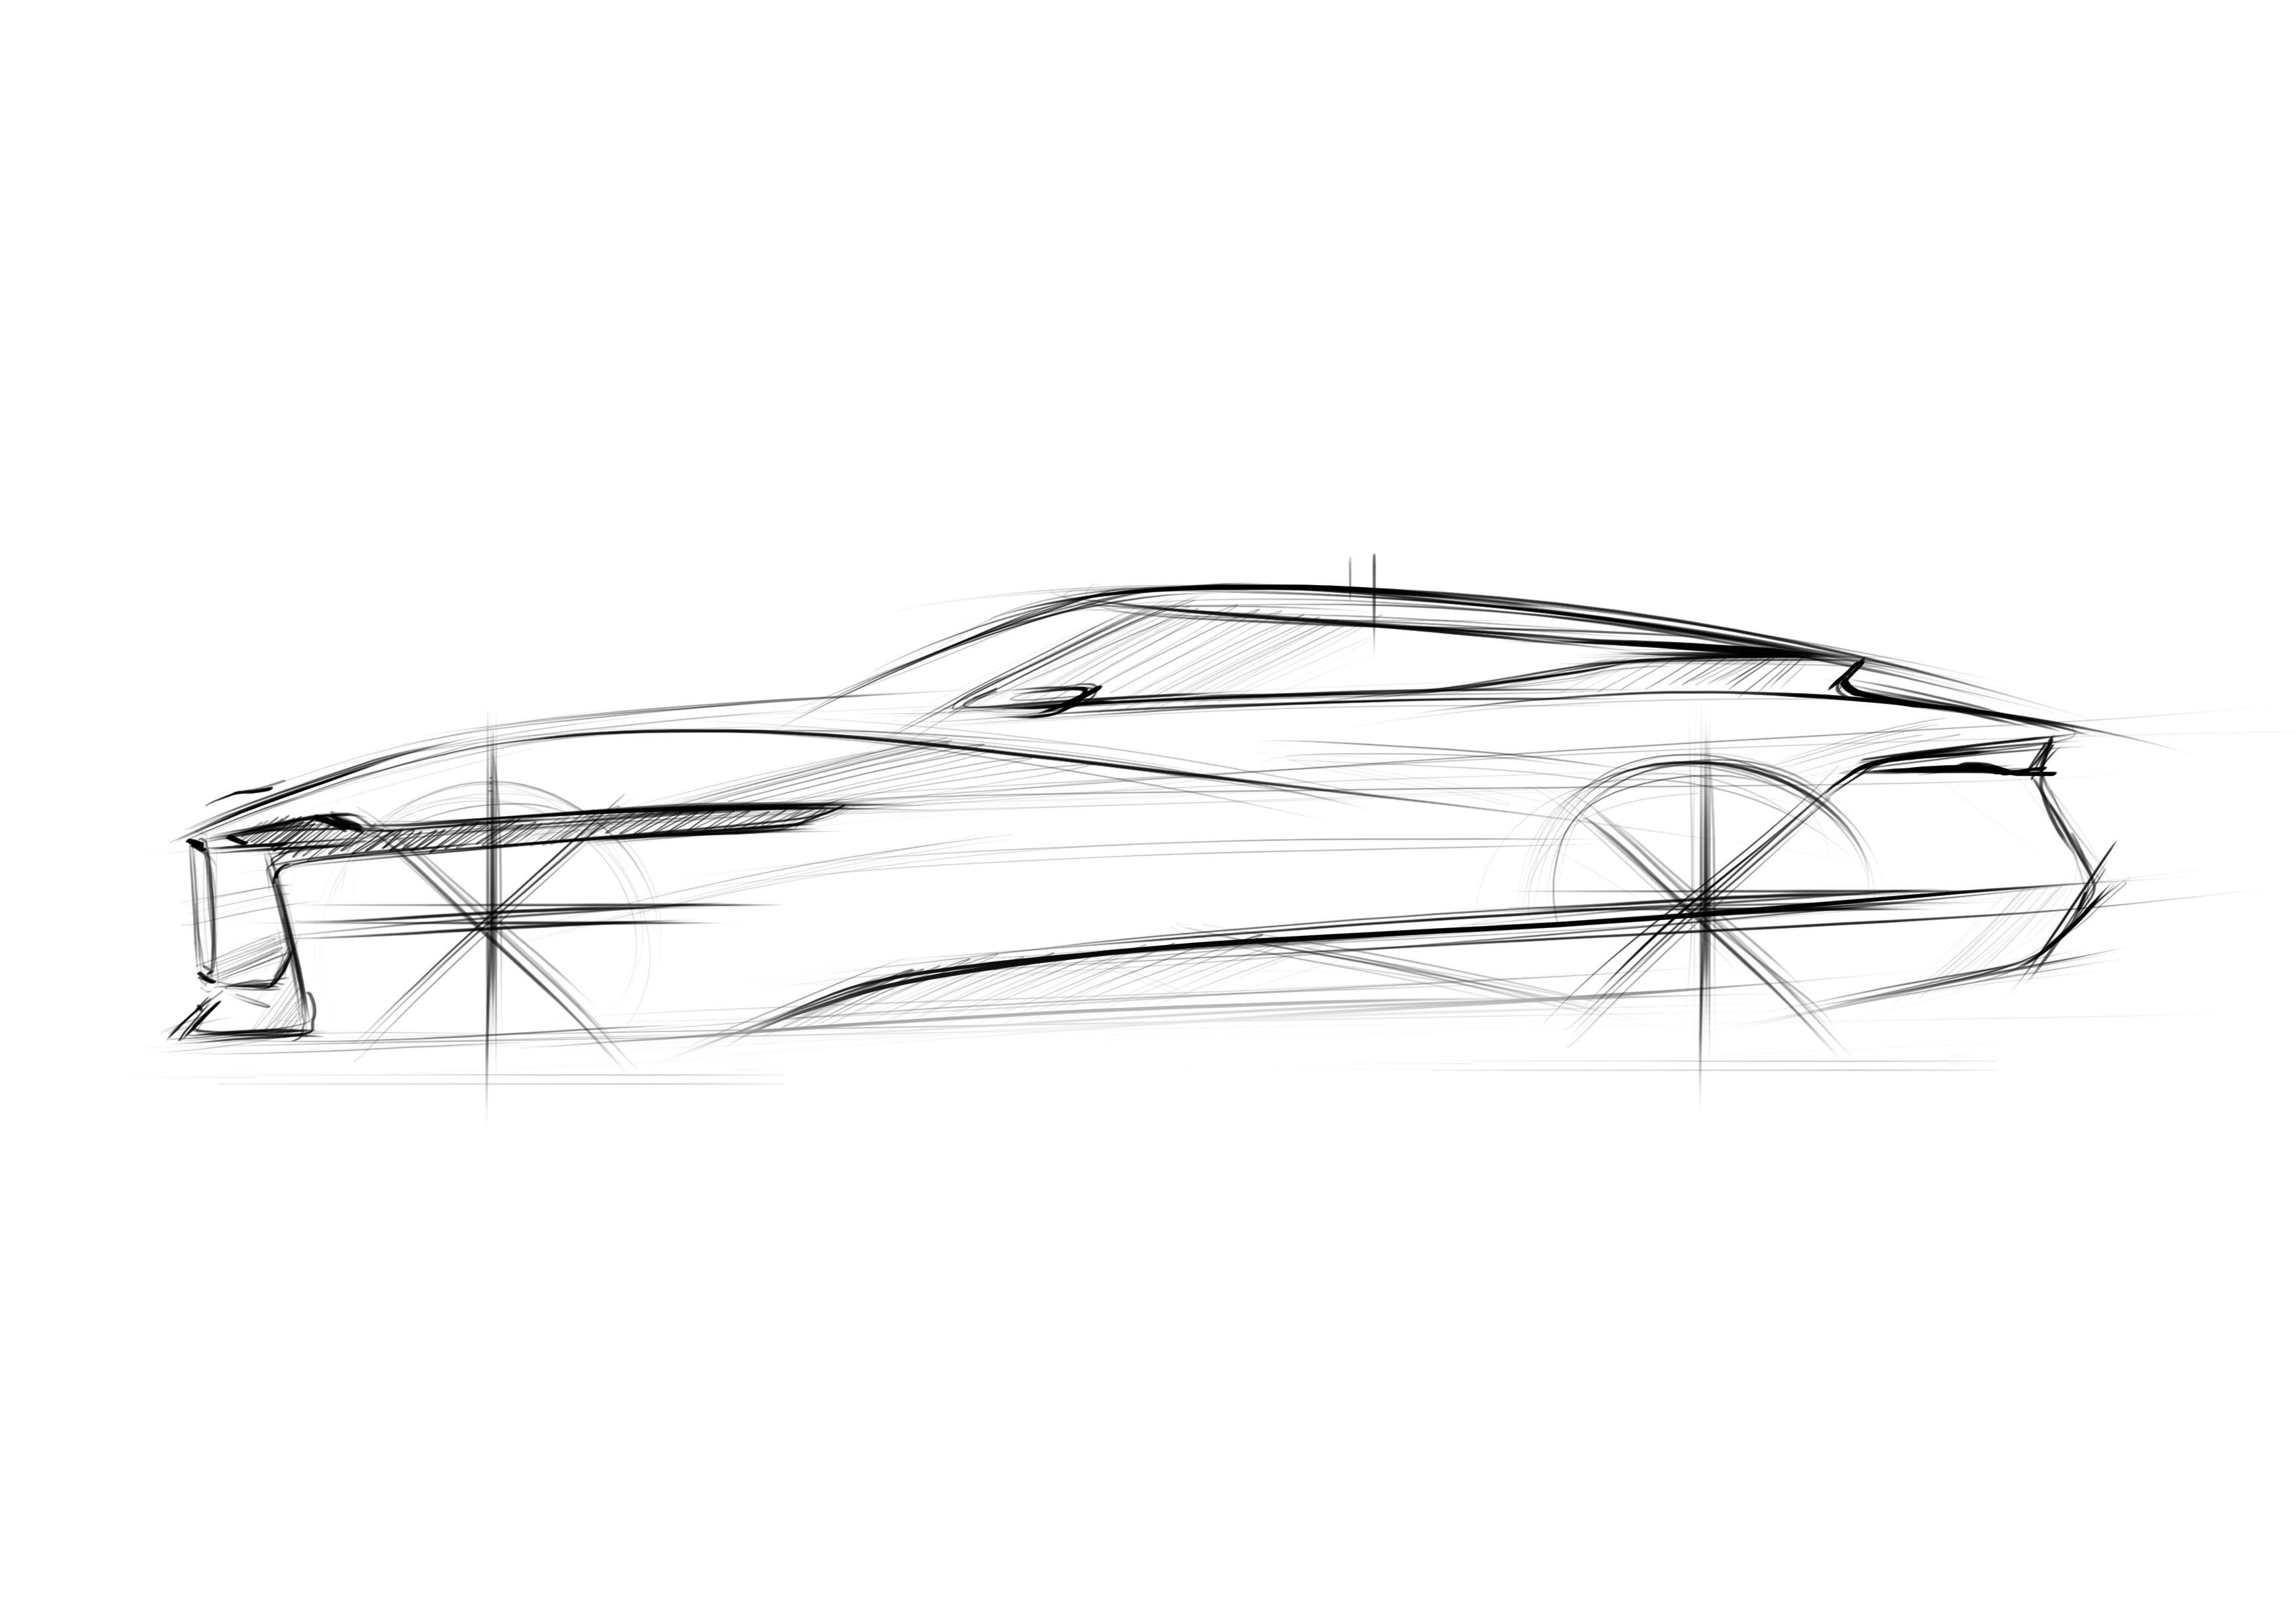 Pin By Sheldonfair On 手绘 Supercar Design Car Design Sketch Automotive Design